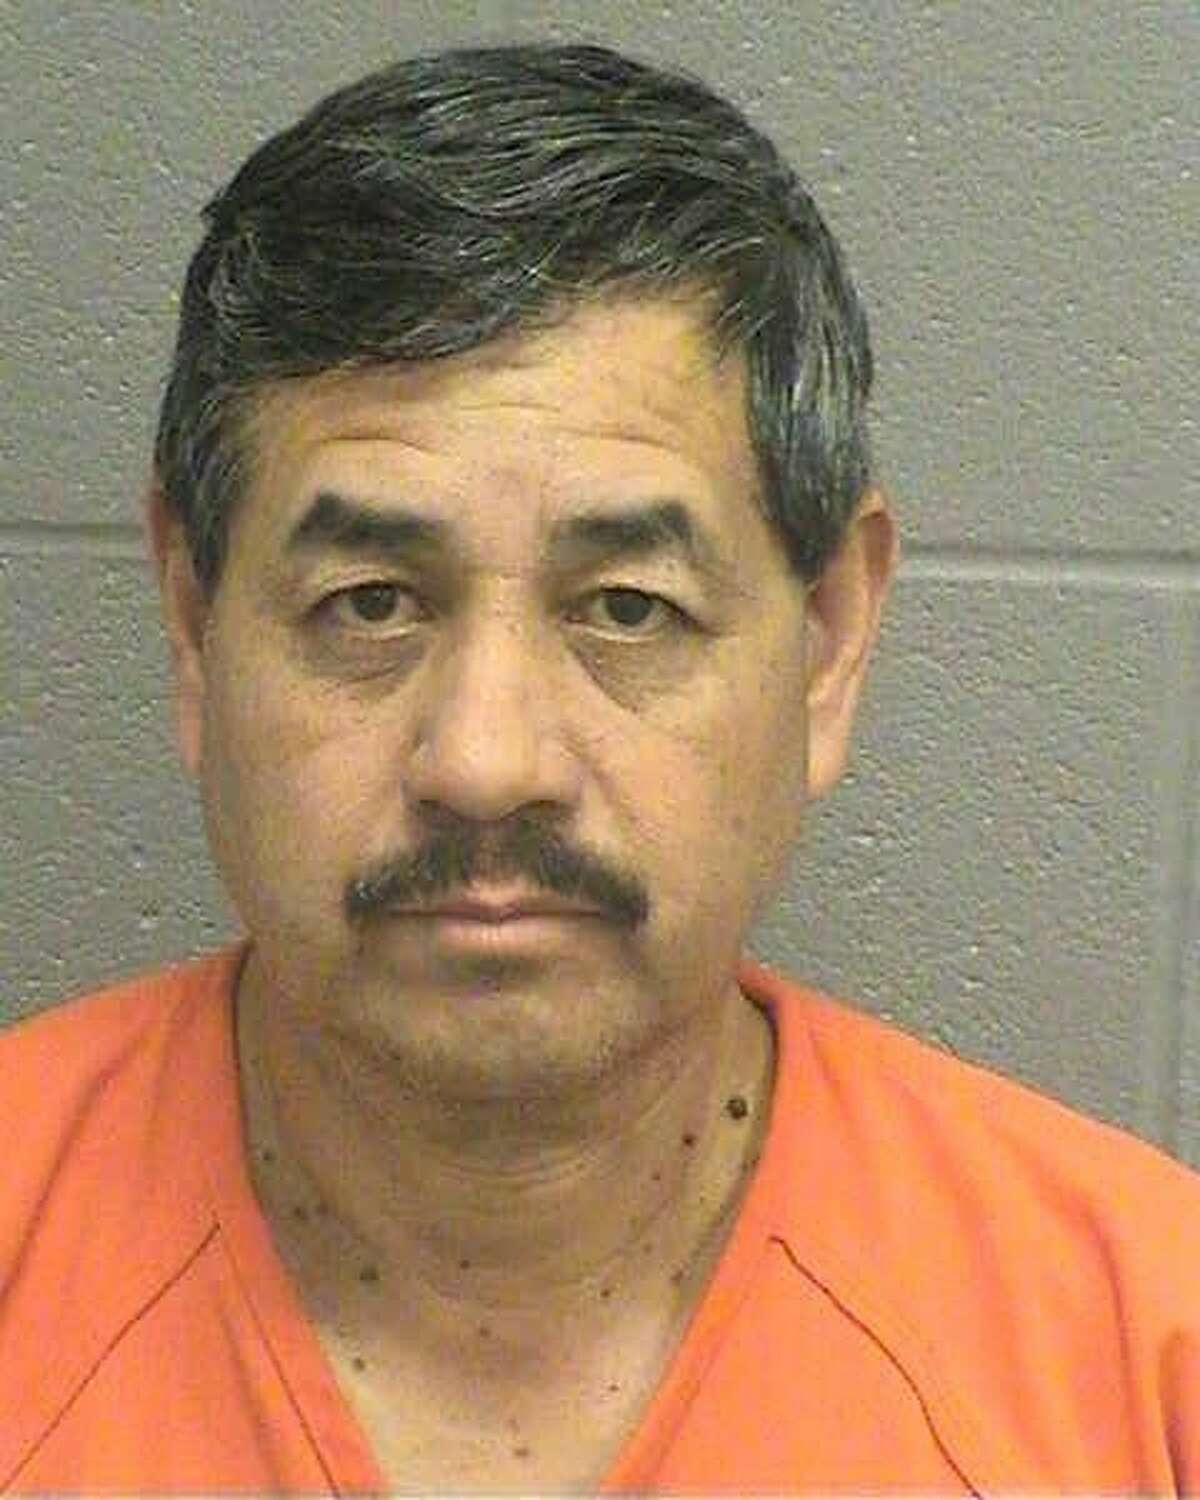 Aurelio Luna Sr., 55, was sentenced Oct. 21 to life in prison without the possibility of parole after a jury found him guilty of continuous sexual assault of a child.Evidence at trial showed that Luna committed multiple acts of sexual assault against a female family member over a period of at least two years, according to a press release from the District Attorney's Office.